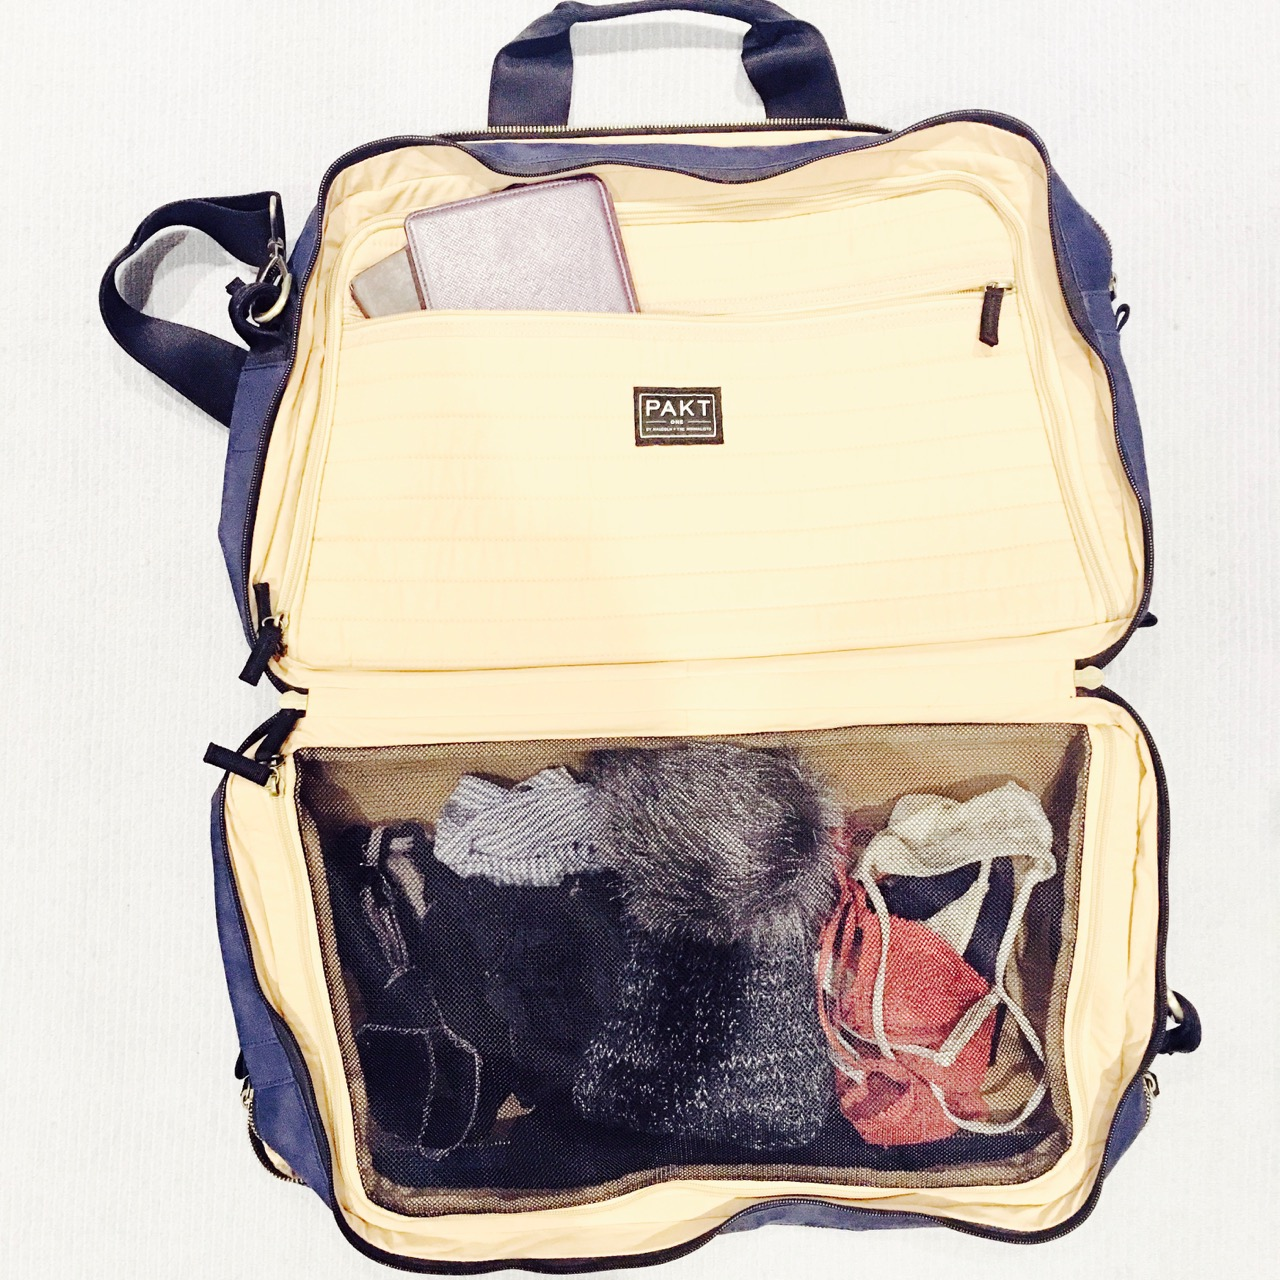 the pakt perfect travel bag for carry on